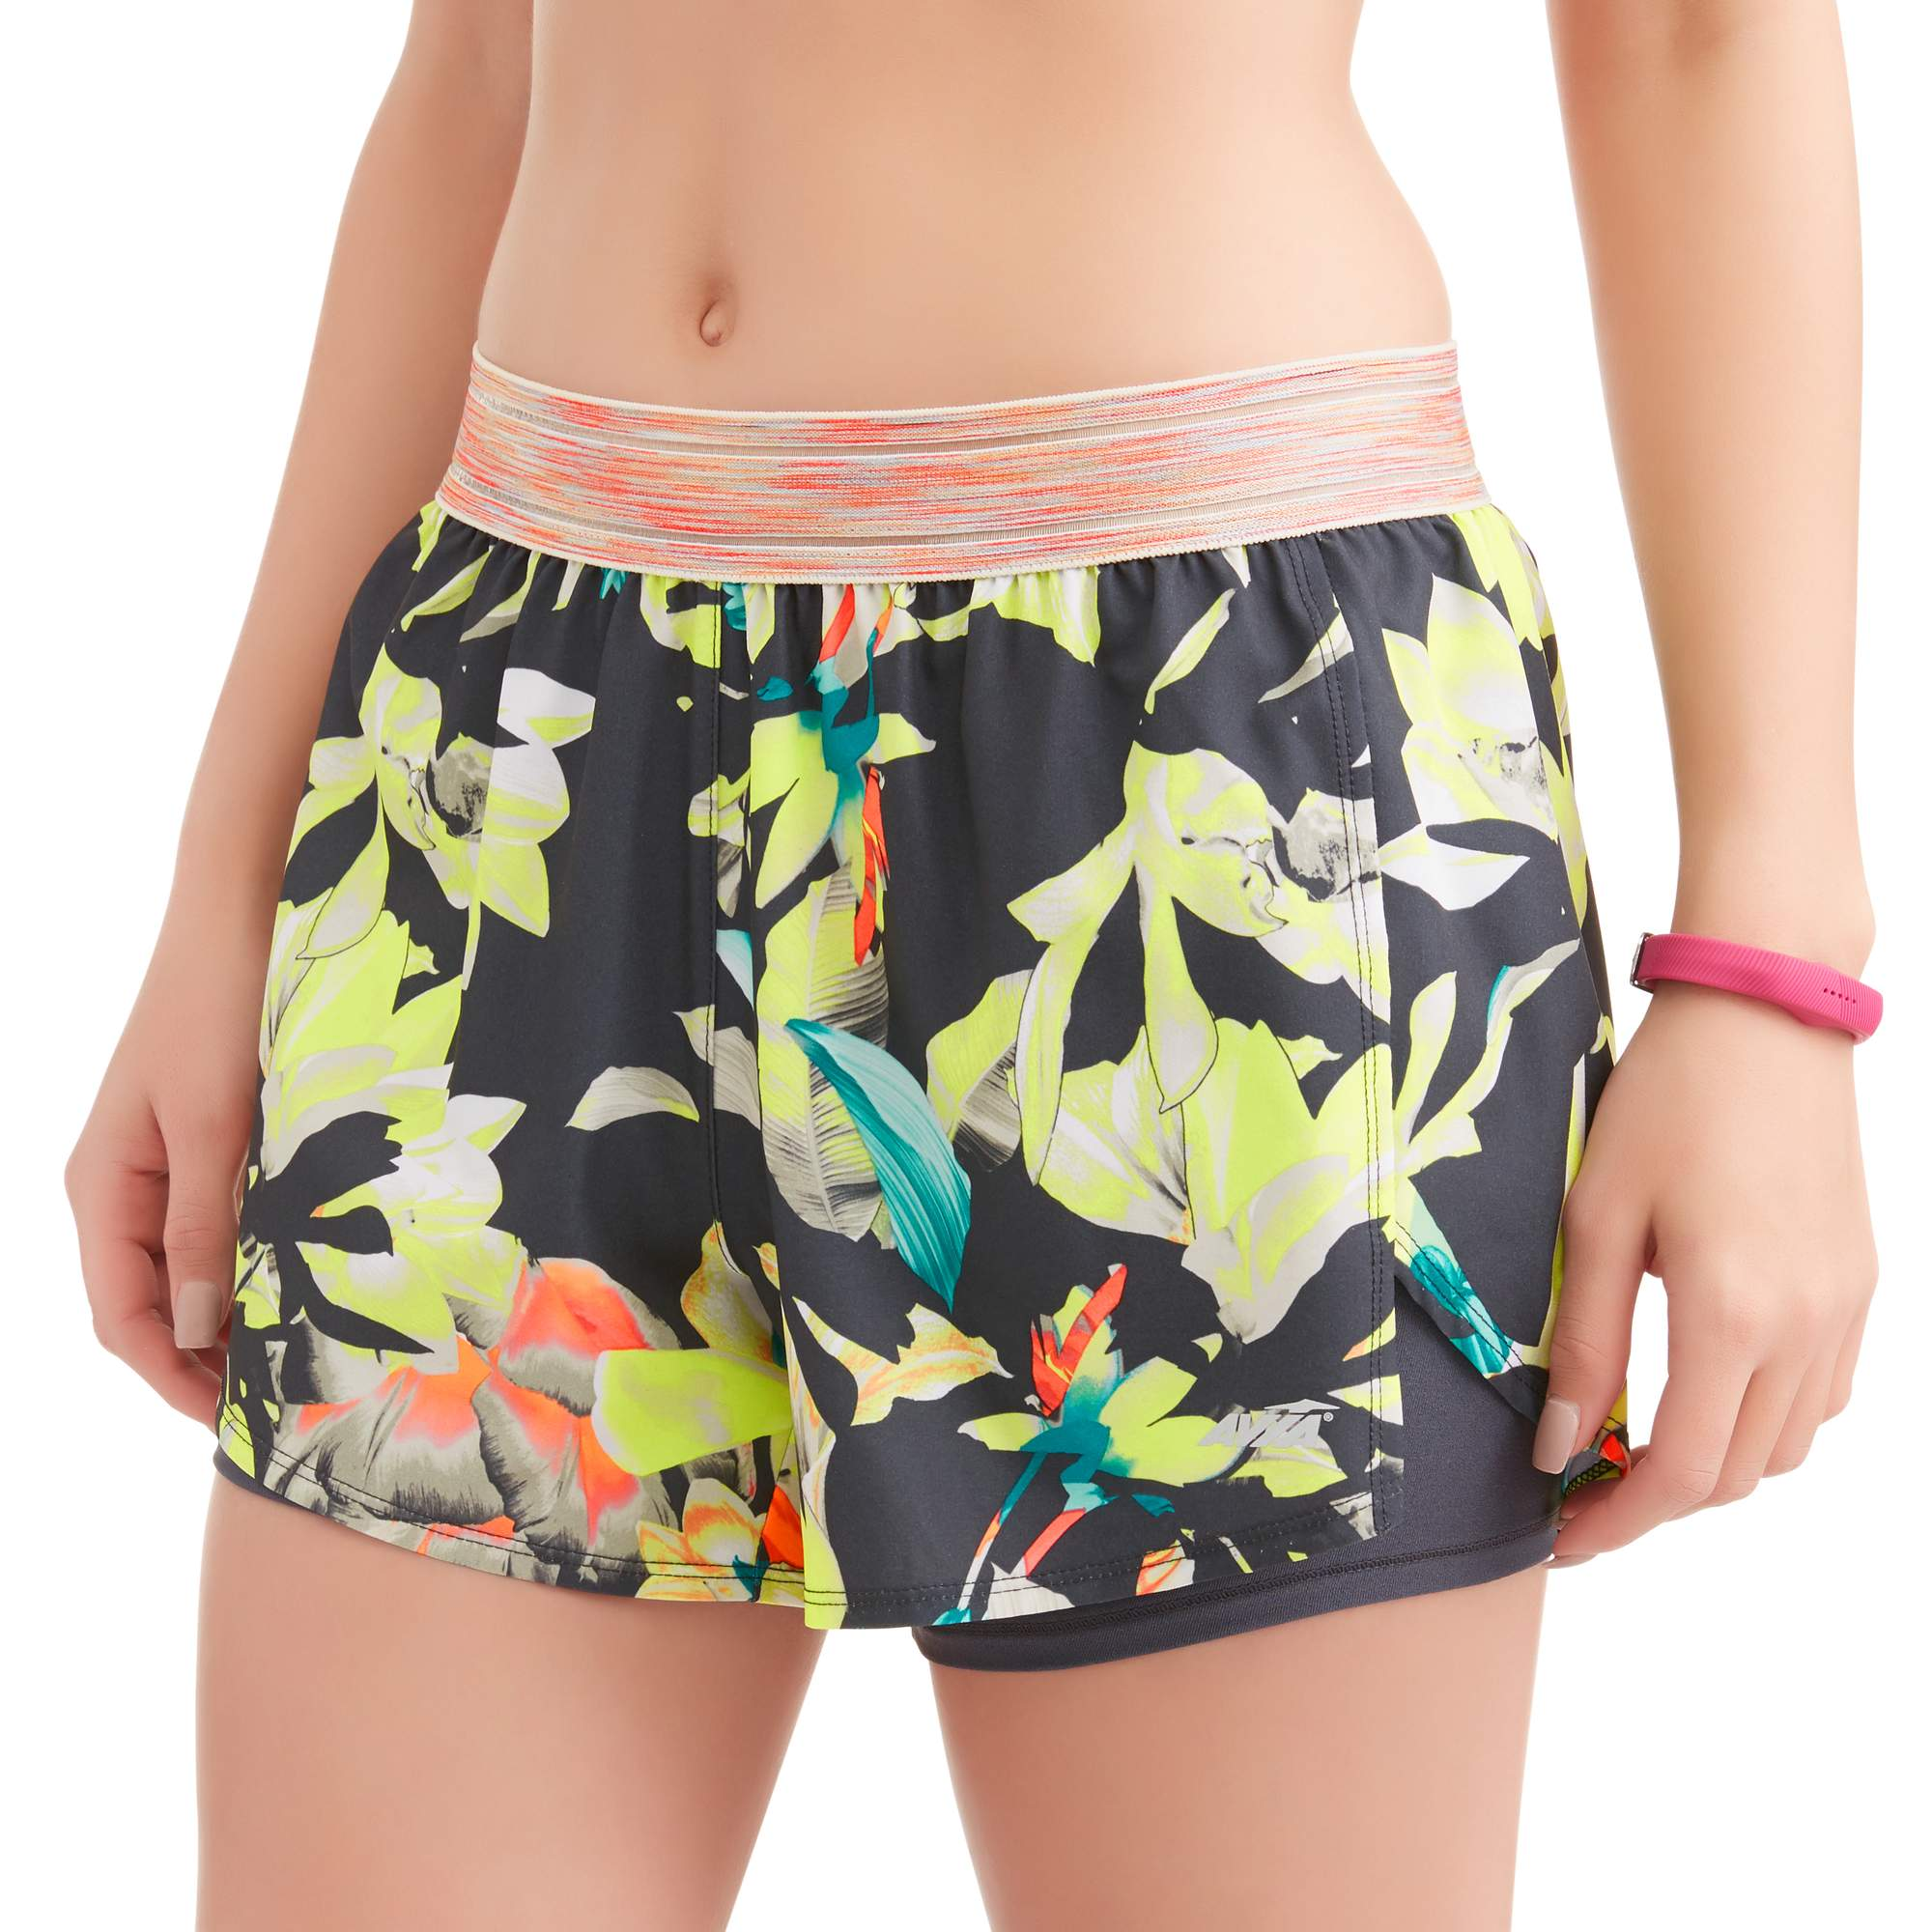 Women's Active 2Fer Running Short With Filament Waistband